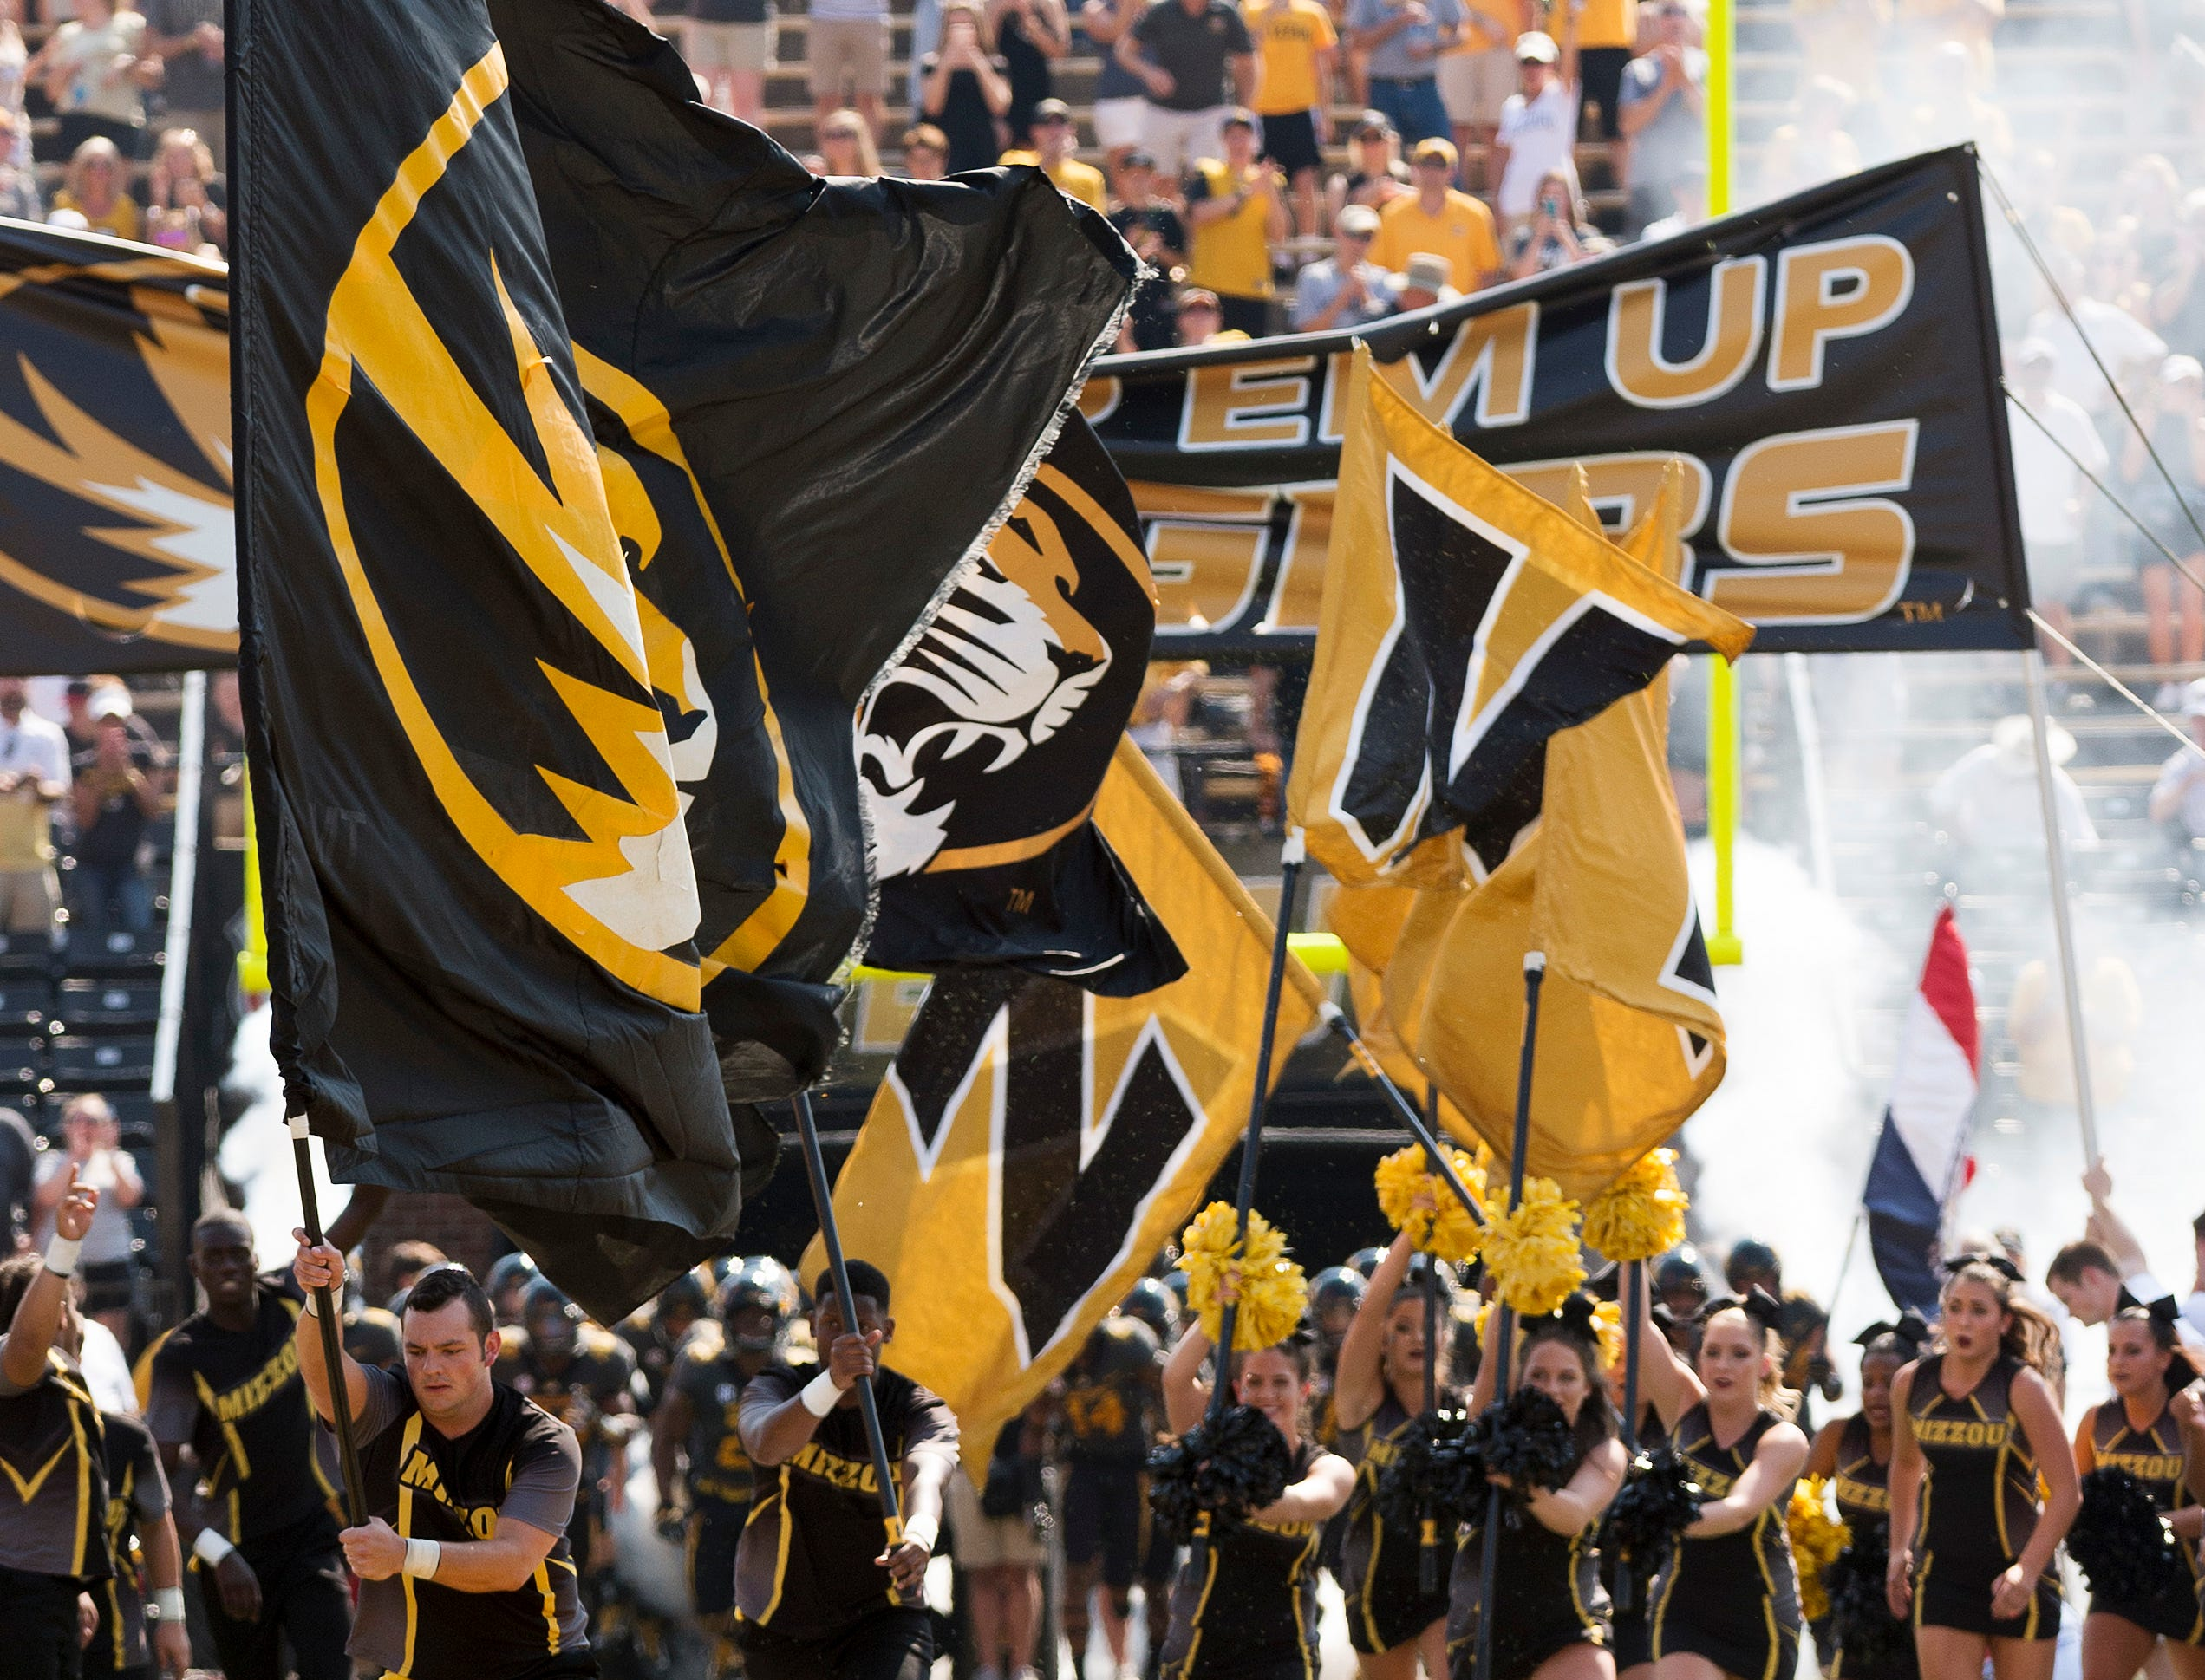 The Missouri cheerleaders lead the football team to the field before the start of an NCAA college football game against Purdue Saturday, Sept. 16, 2017, in Columbia, Mo. (AP Photo/L.G. Patterson)